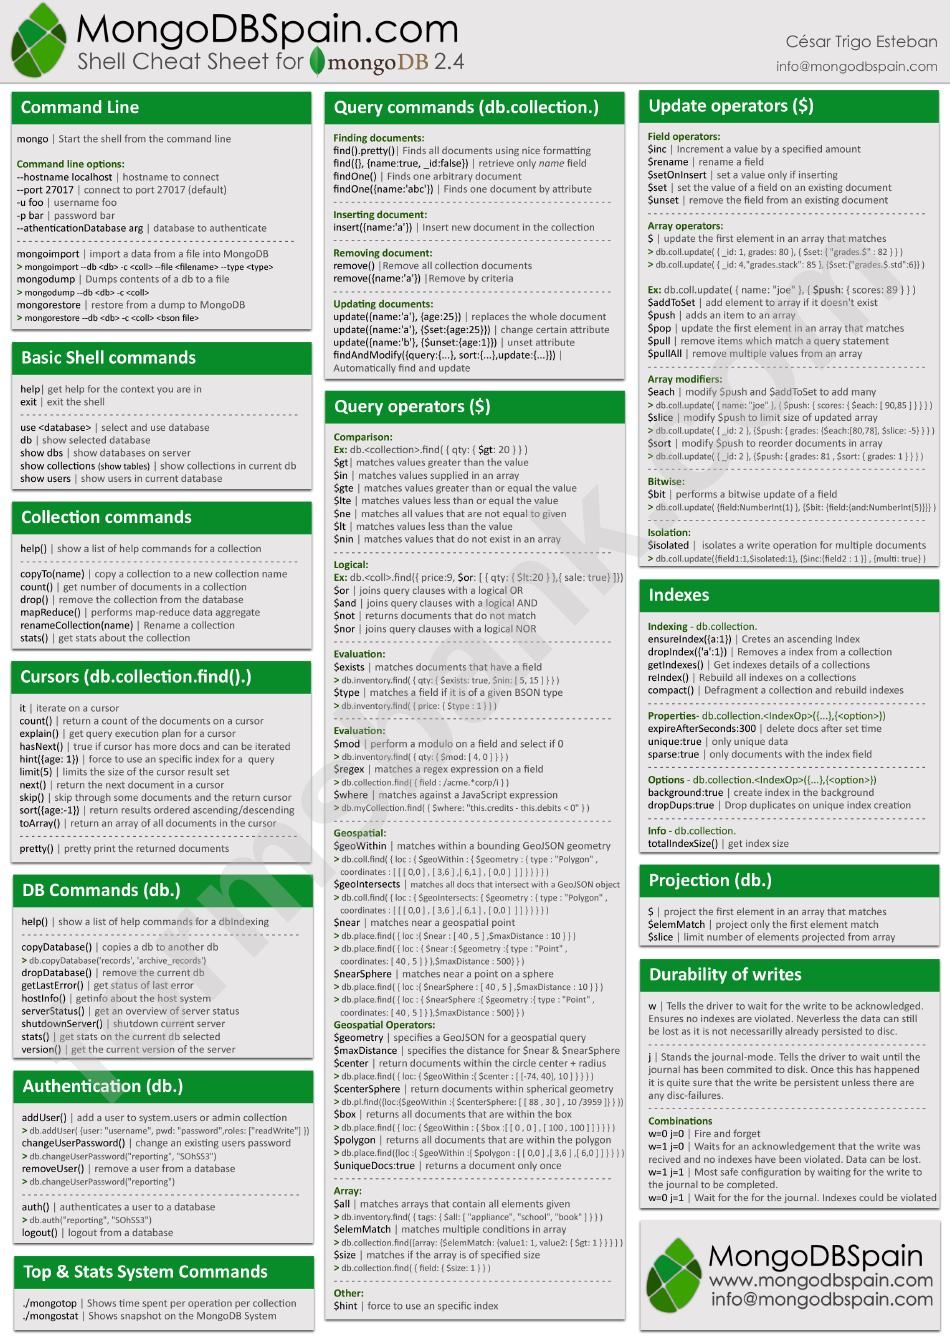 Shell Cheat Sheet For Mongodb 2v4